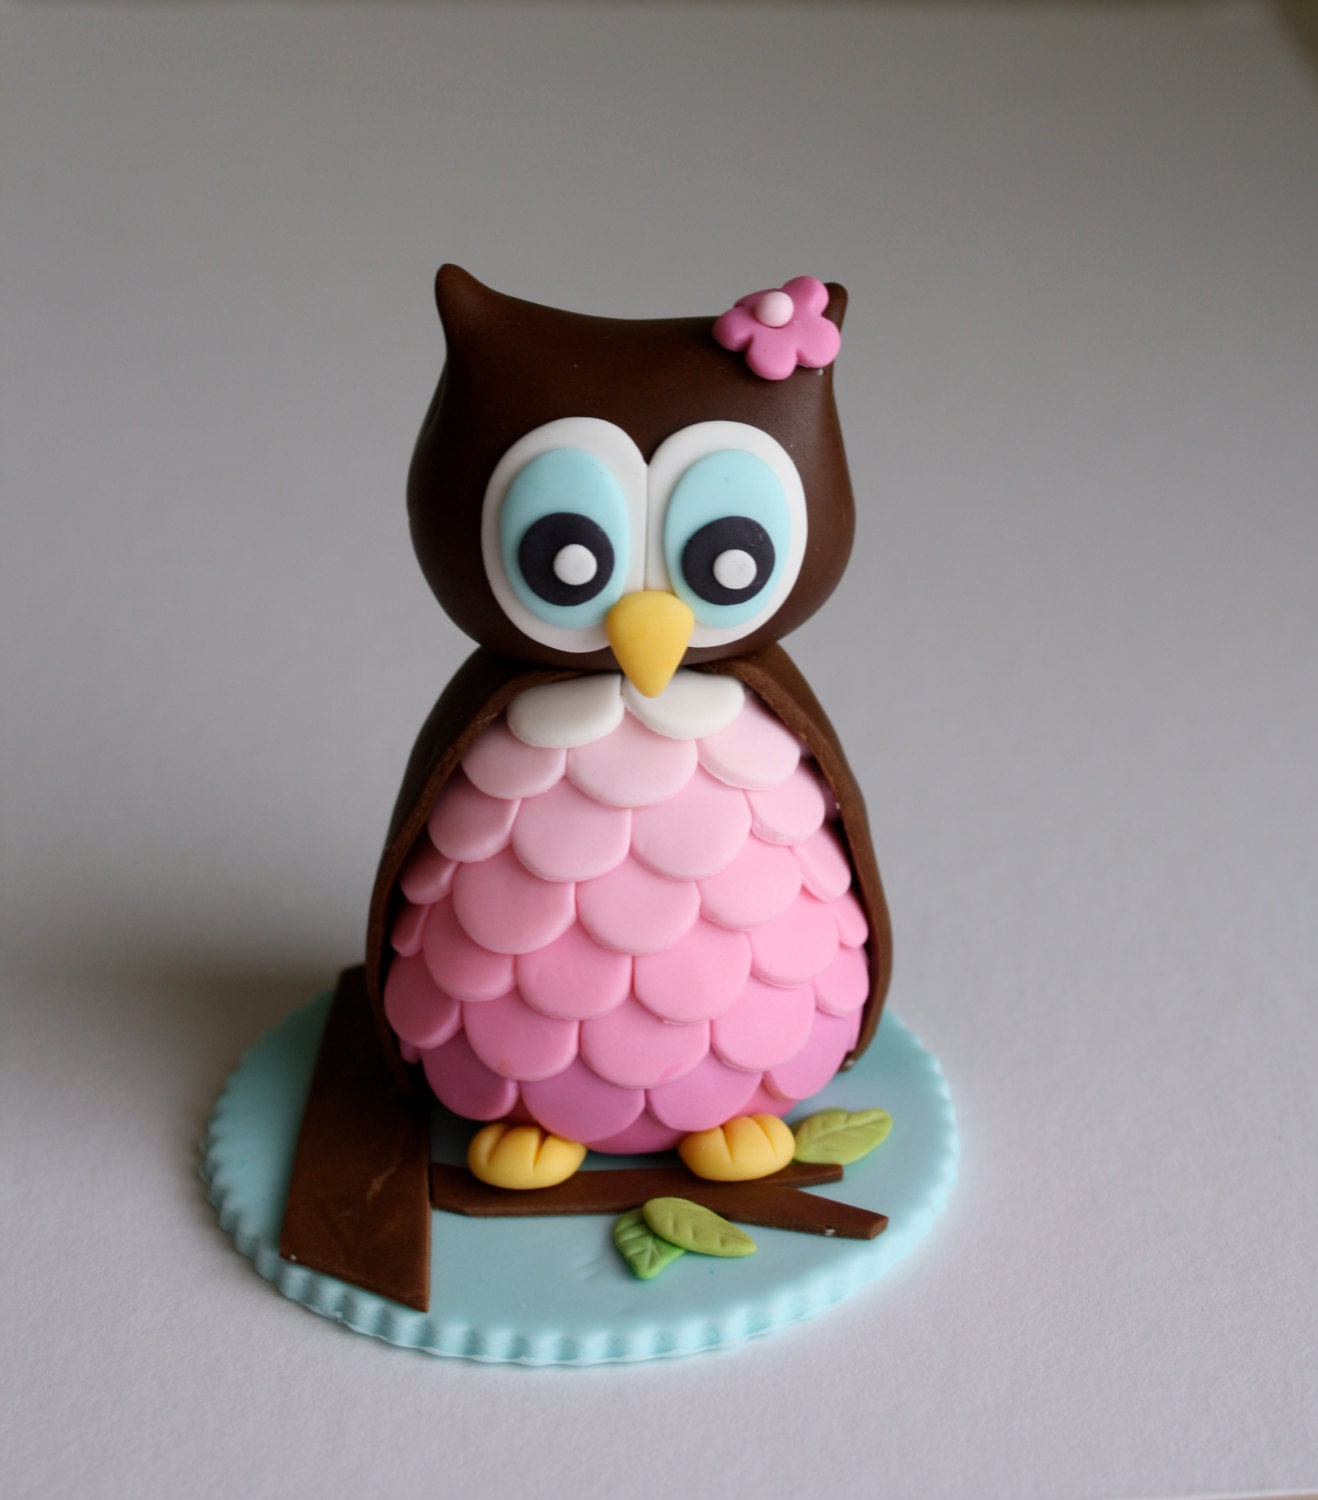 wedding cake toppers etsy fondant owl cake cupcake topper by kimseeeun on etsy 8824